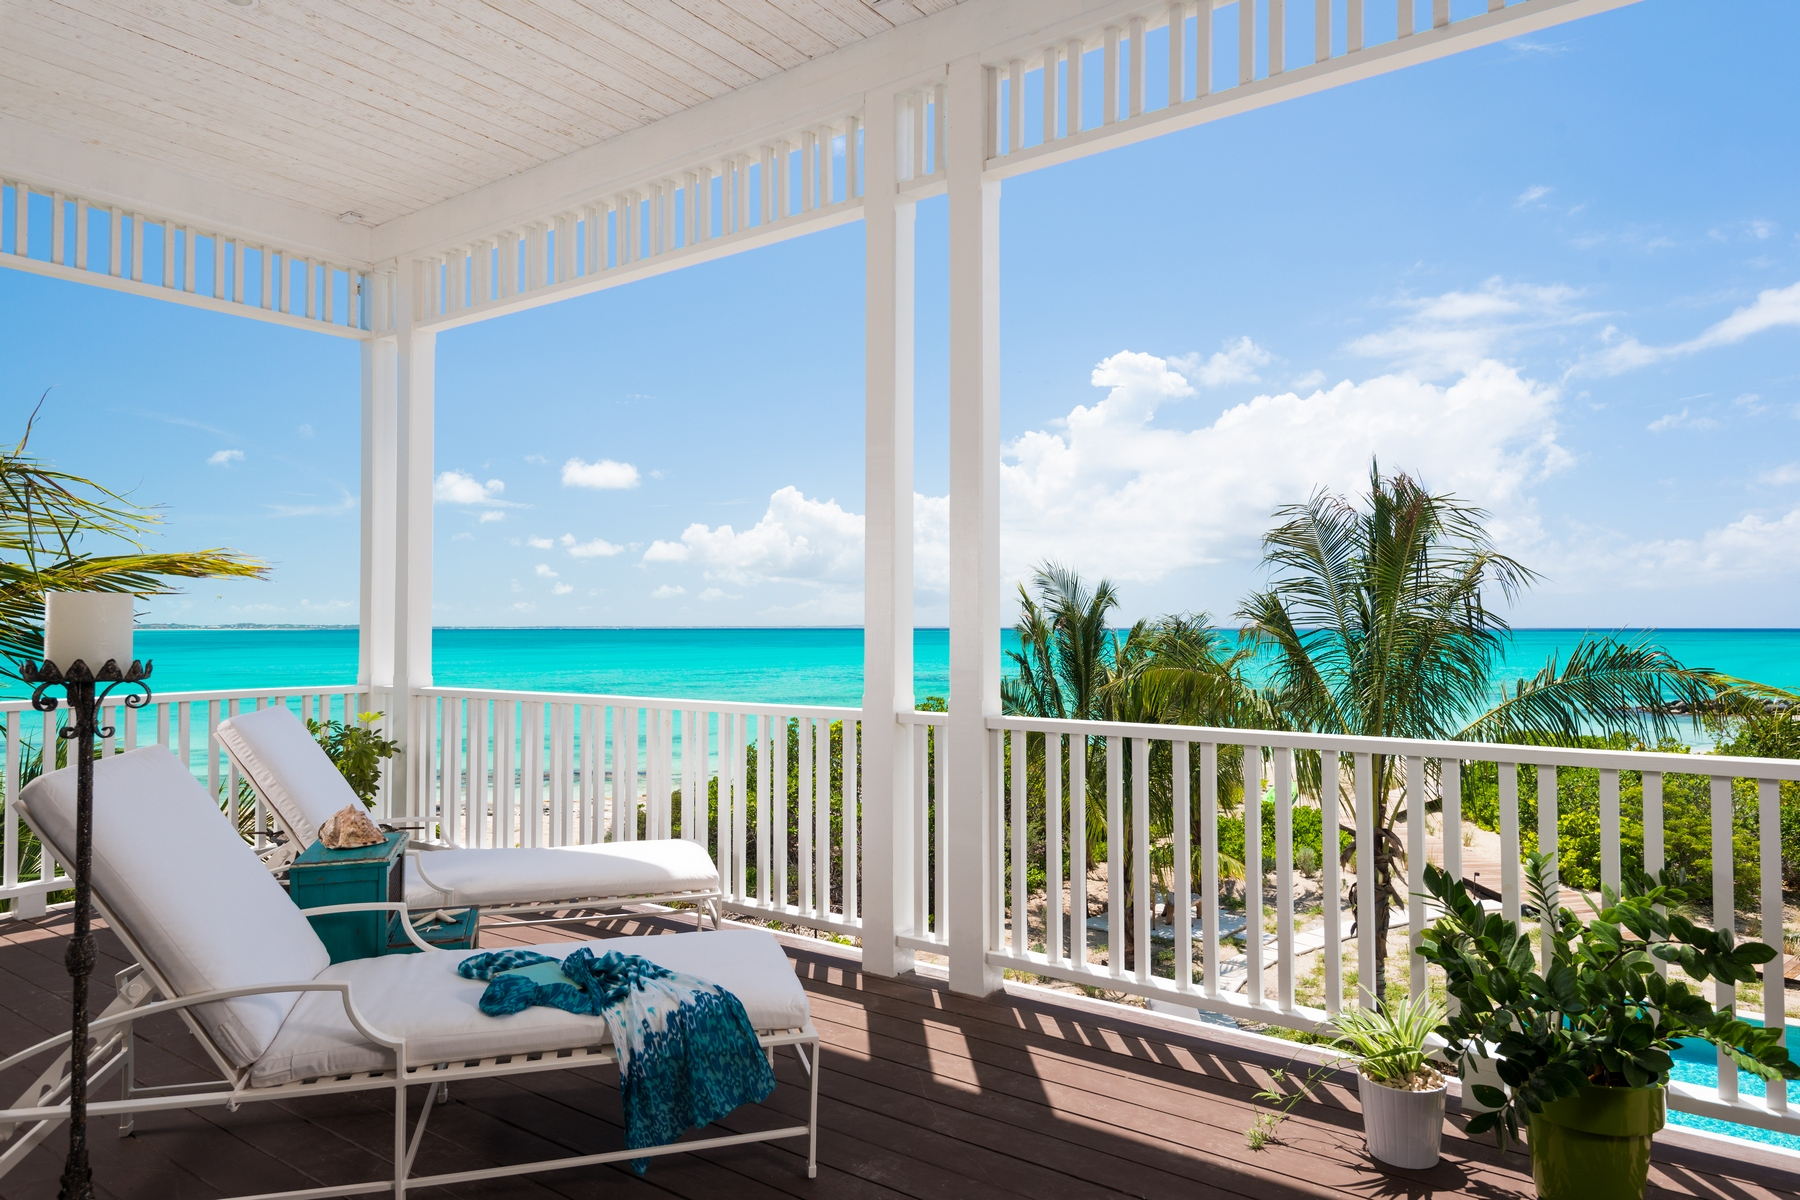 Additional photo for property listing at Saving Grace - Luxurious Beachfront Villa  Grace Bay, Providenciales TCI BWI Îles Turques Et Caïques